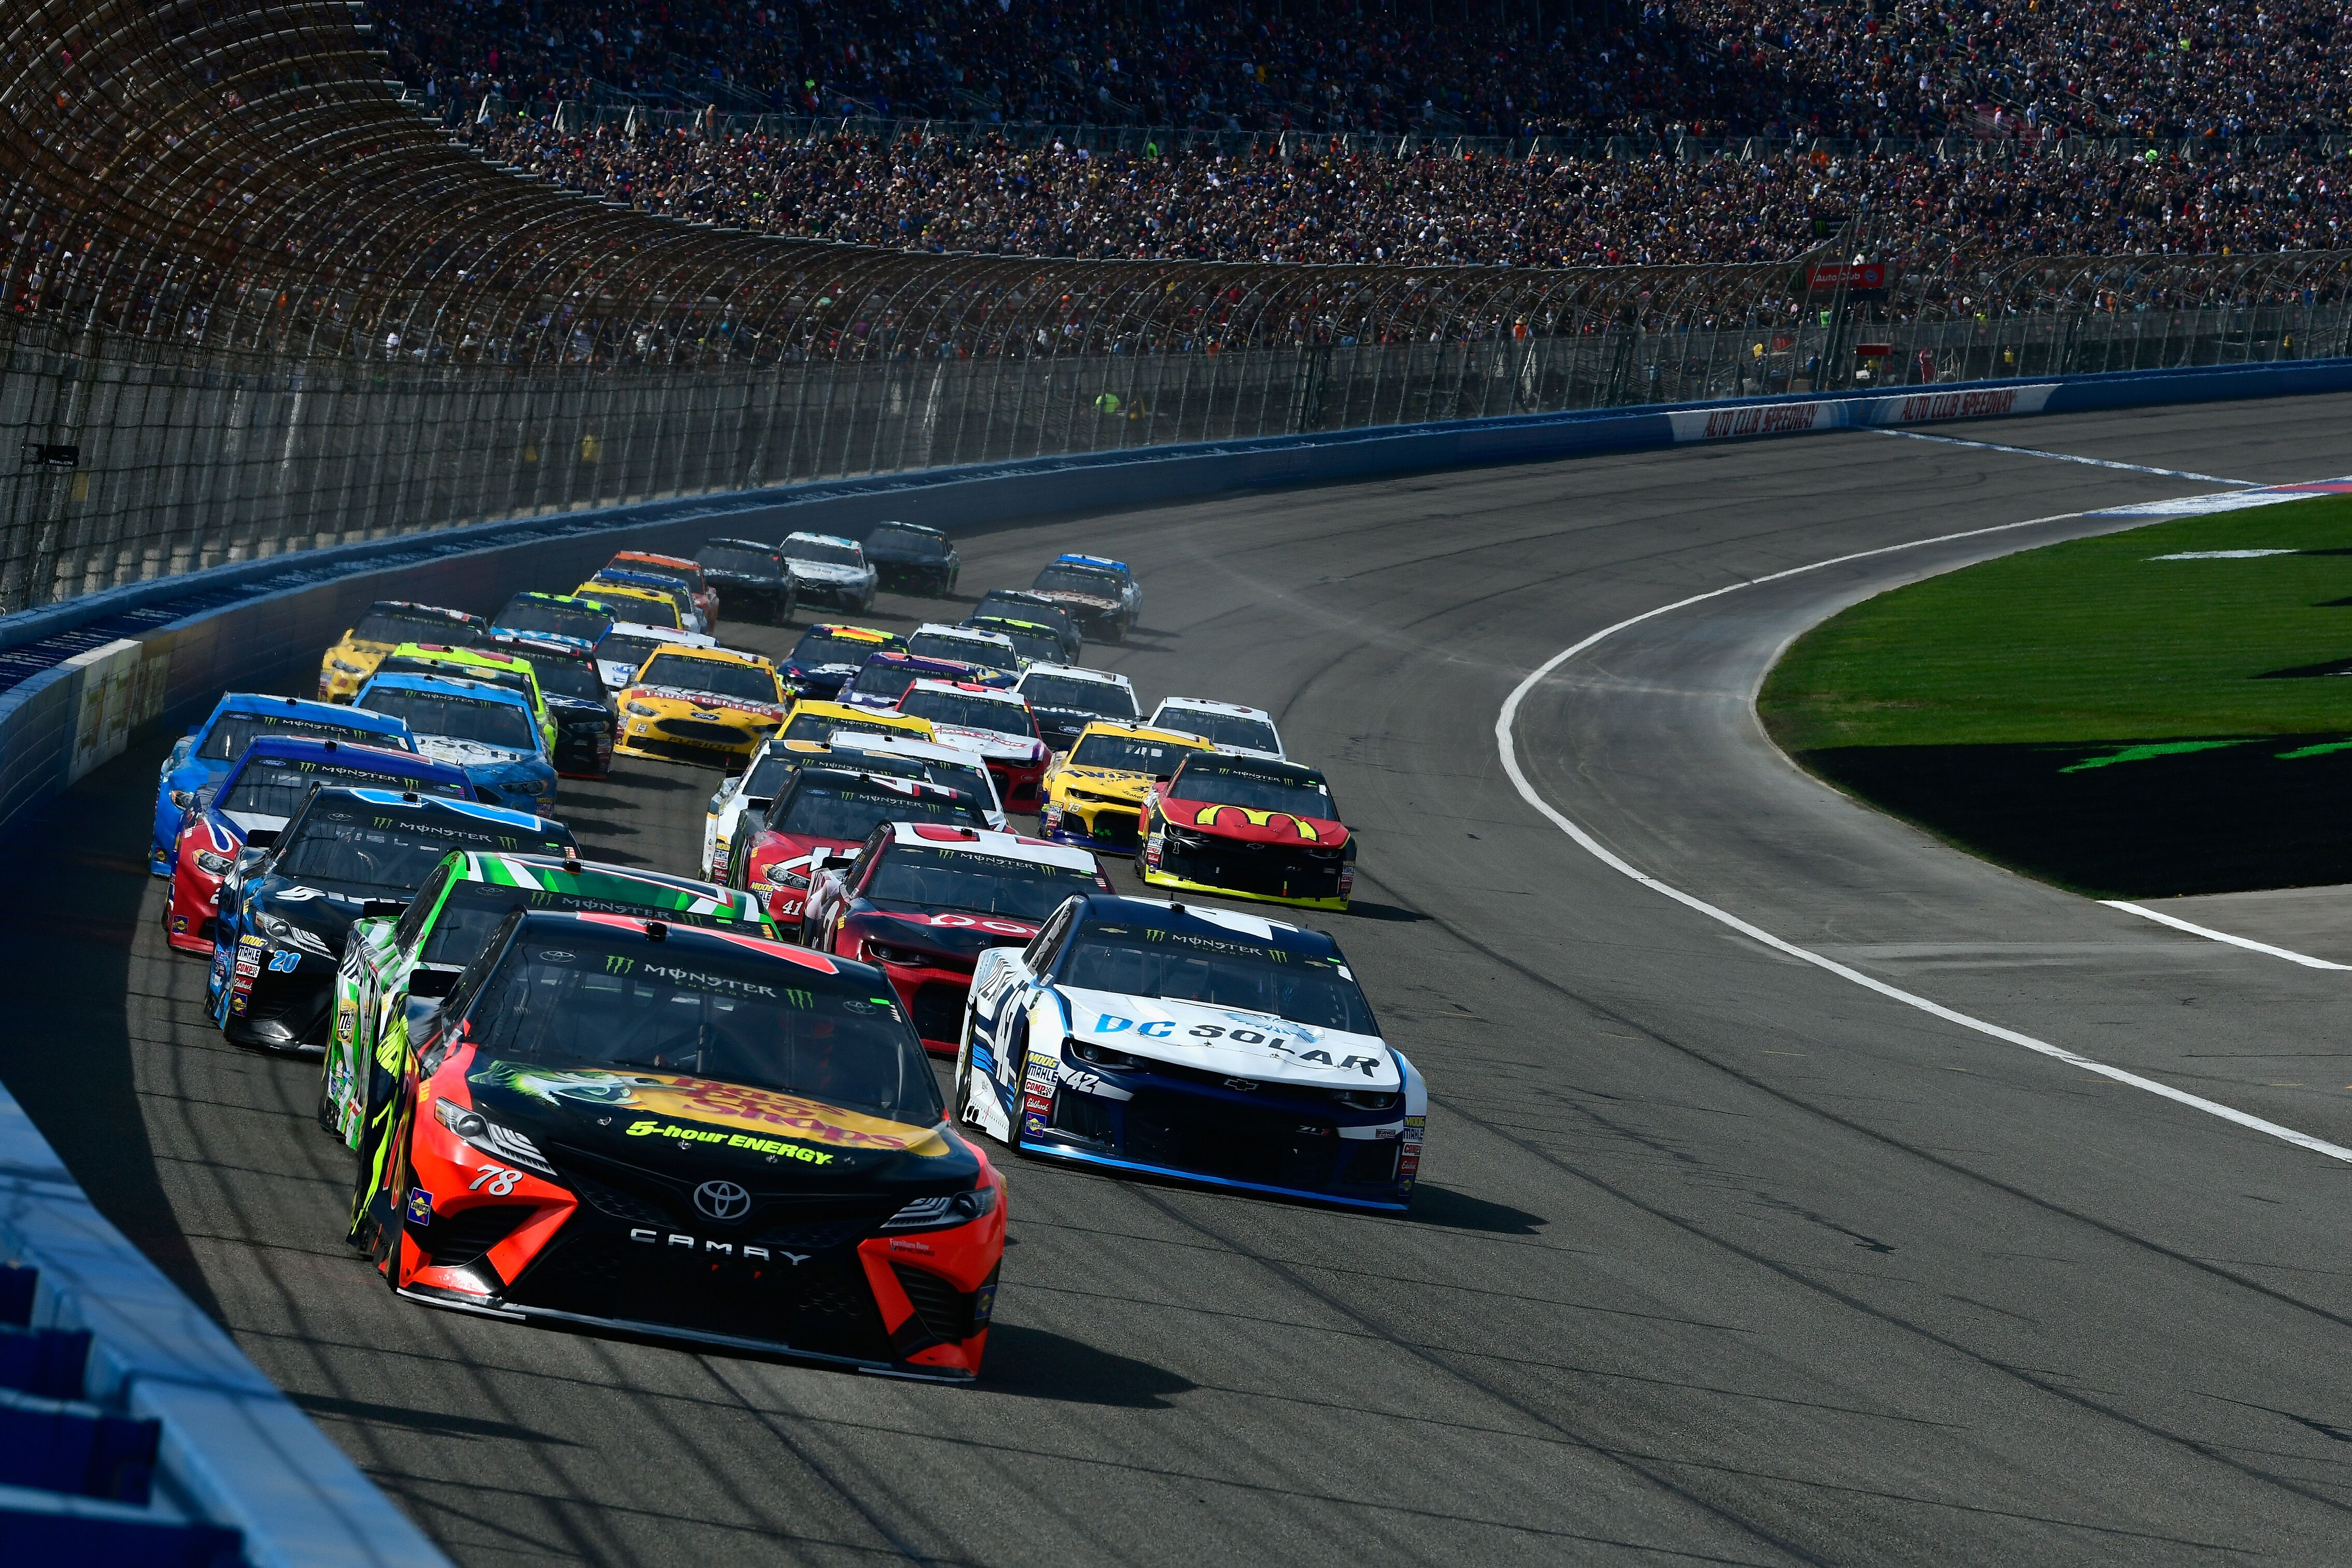 What are the betting odds for NASCAR at Fontana?